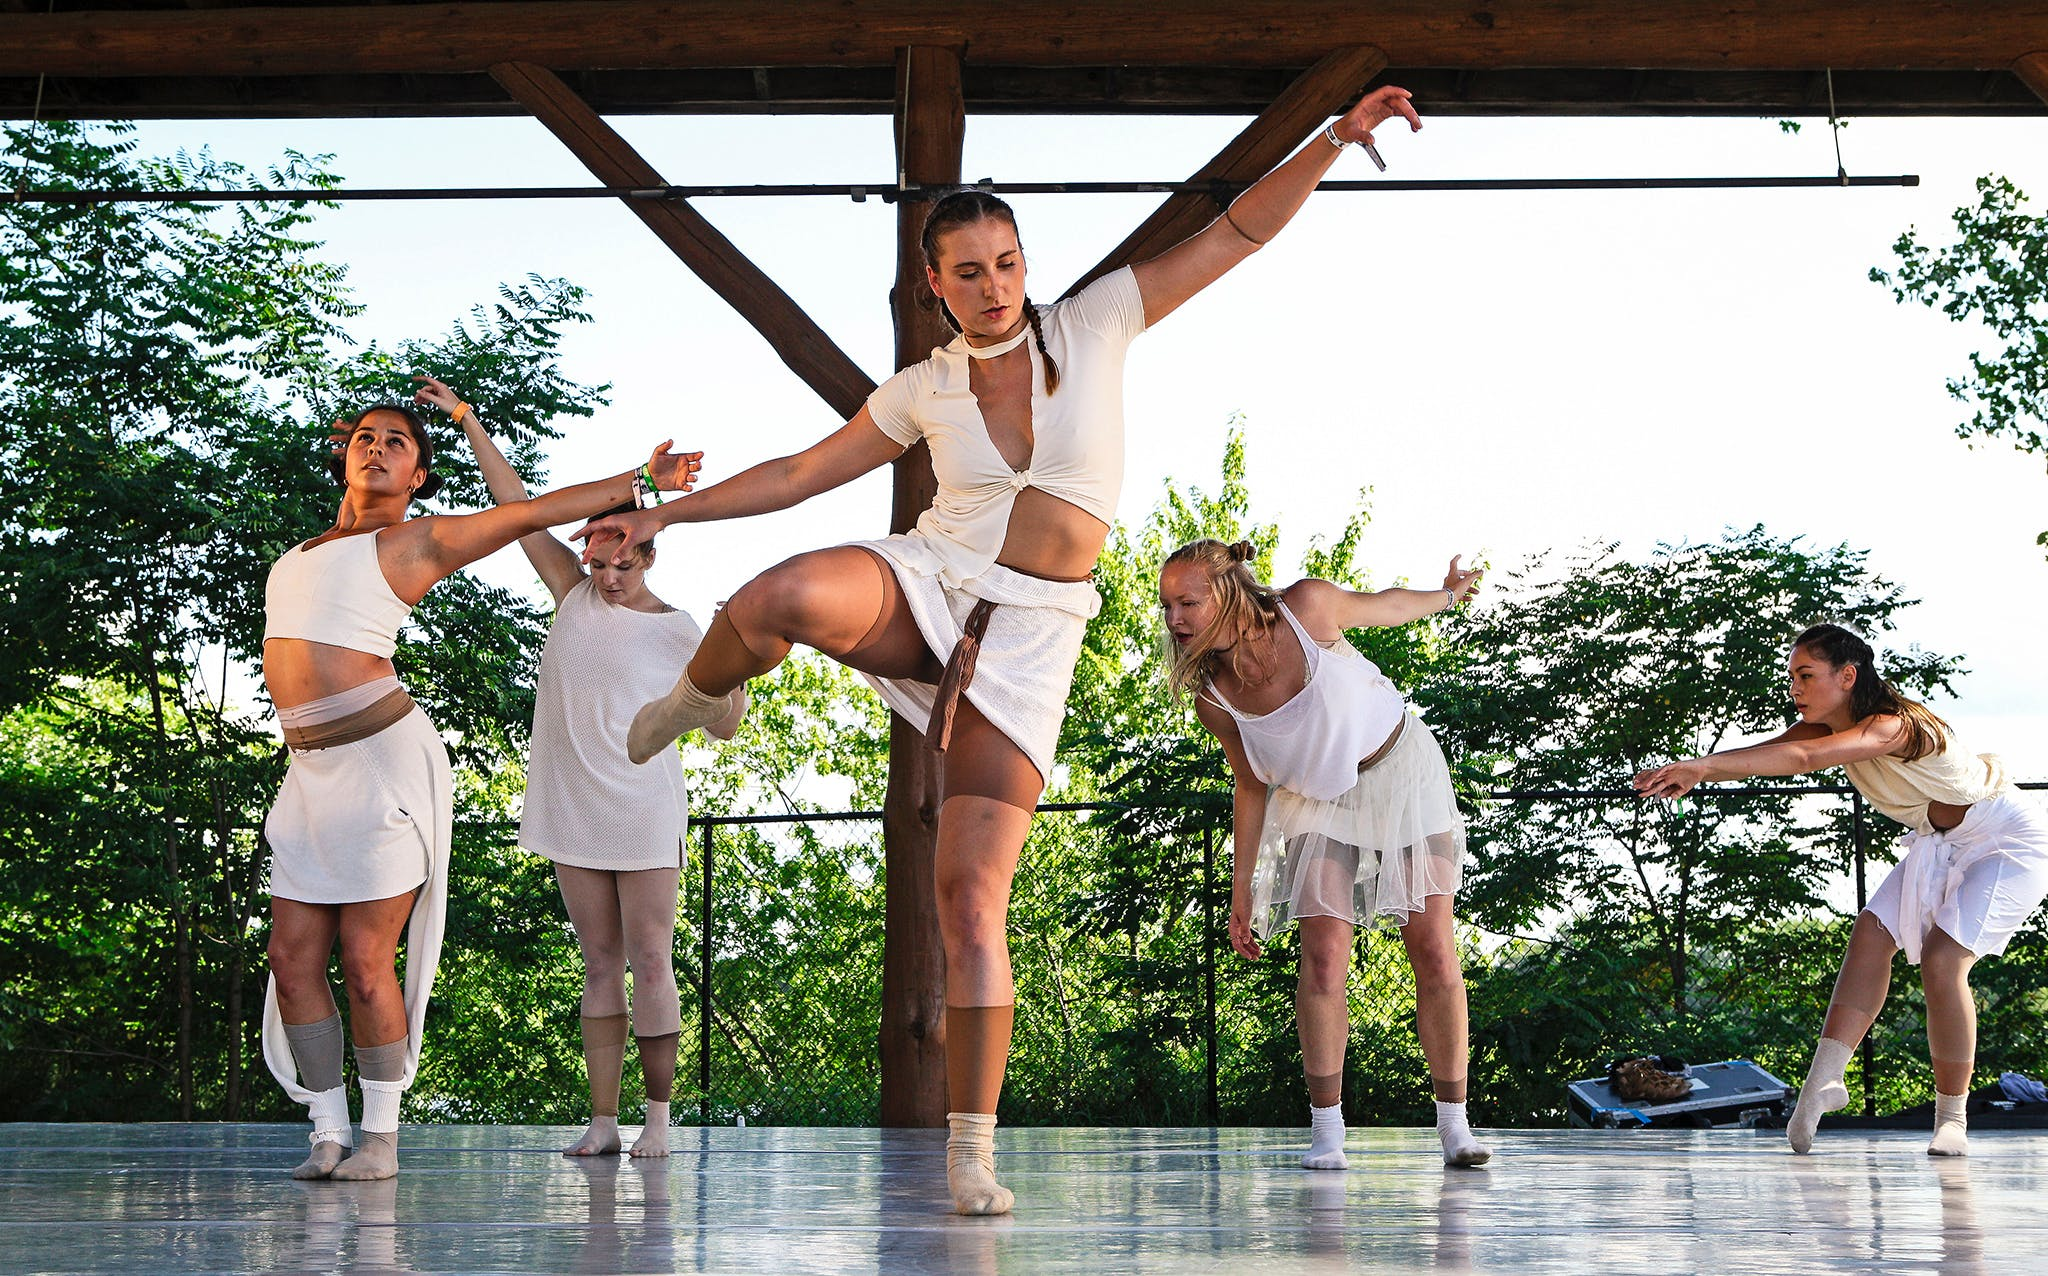 Ladies in white dancing on outdoor stage.